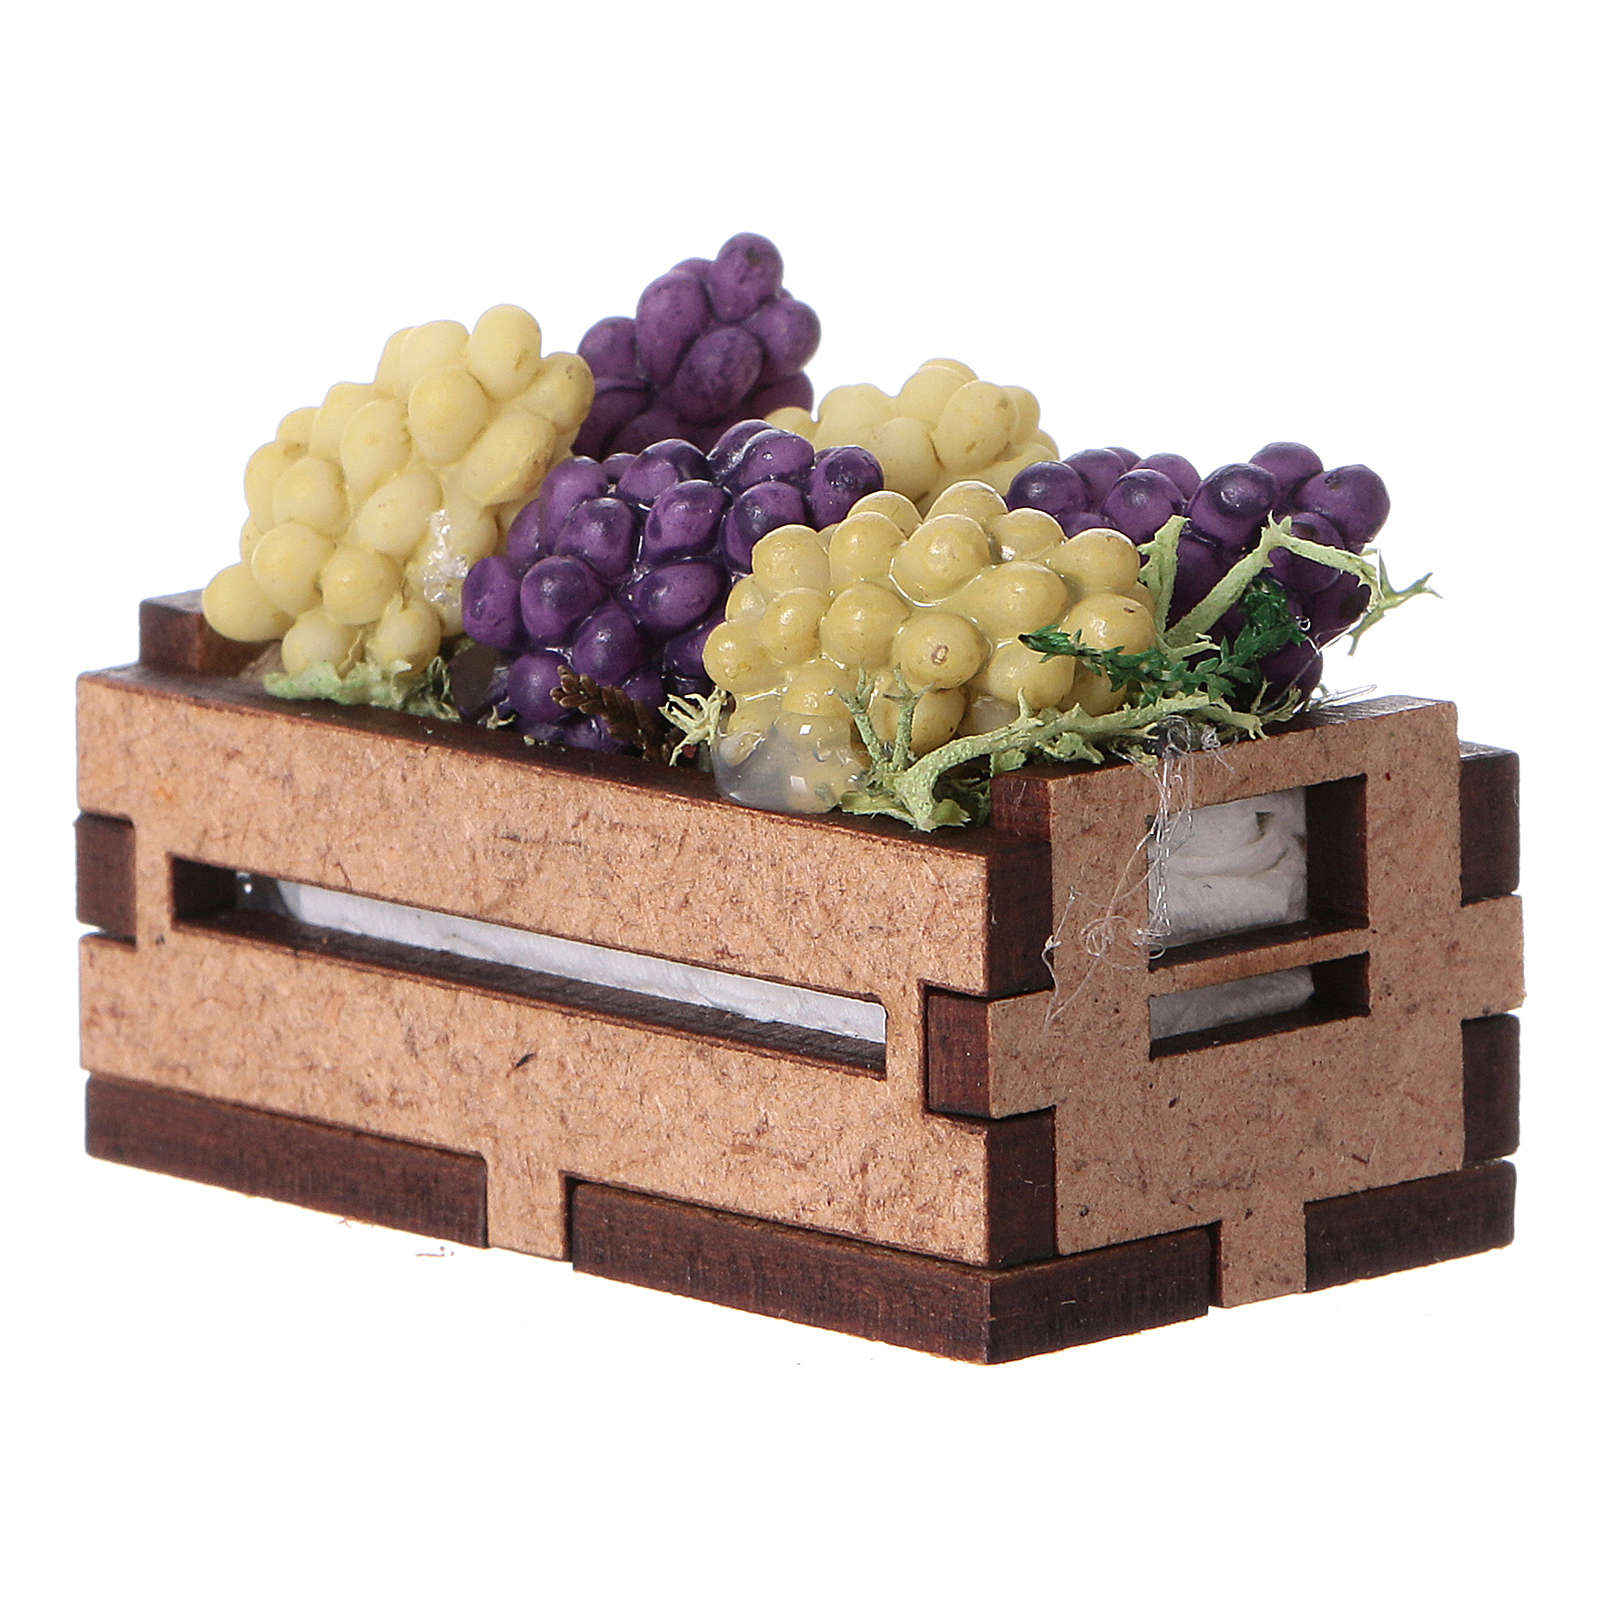 Crate of grapes 5x5x5 cm 4